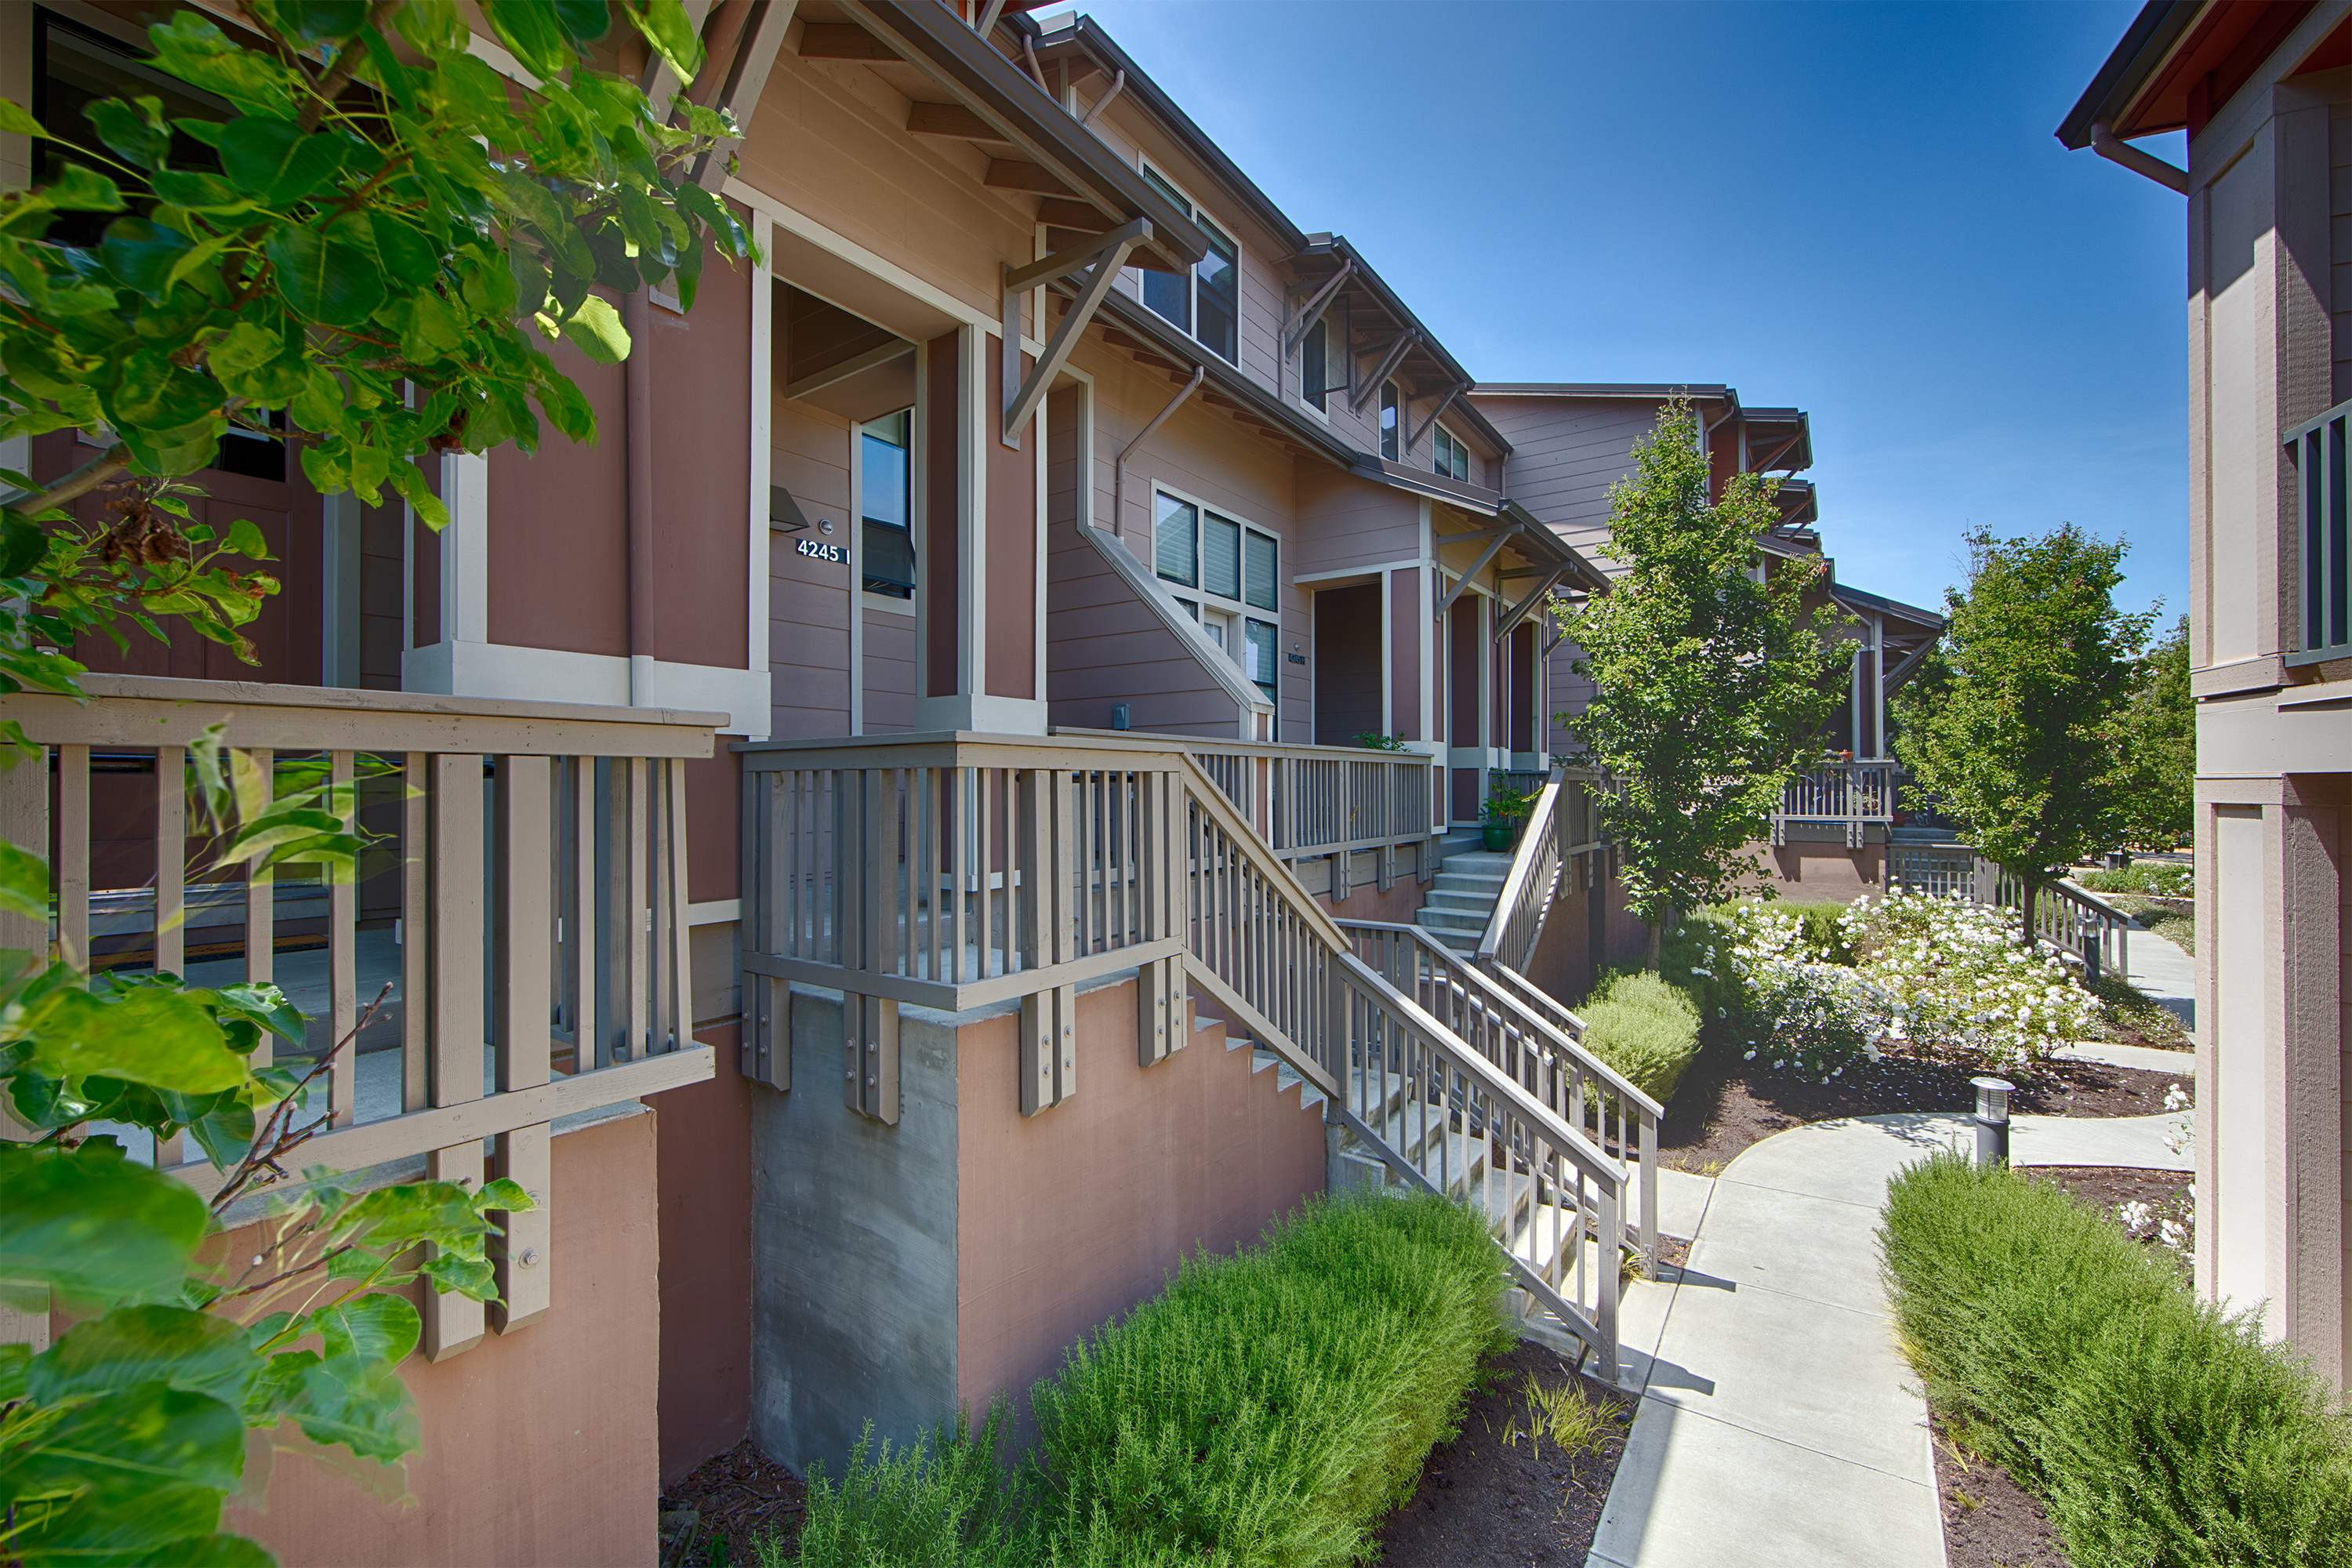 Picture of 4245 Rickeys Way I, Palo Alto 94306 - Home For Sale